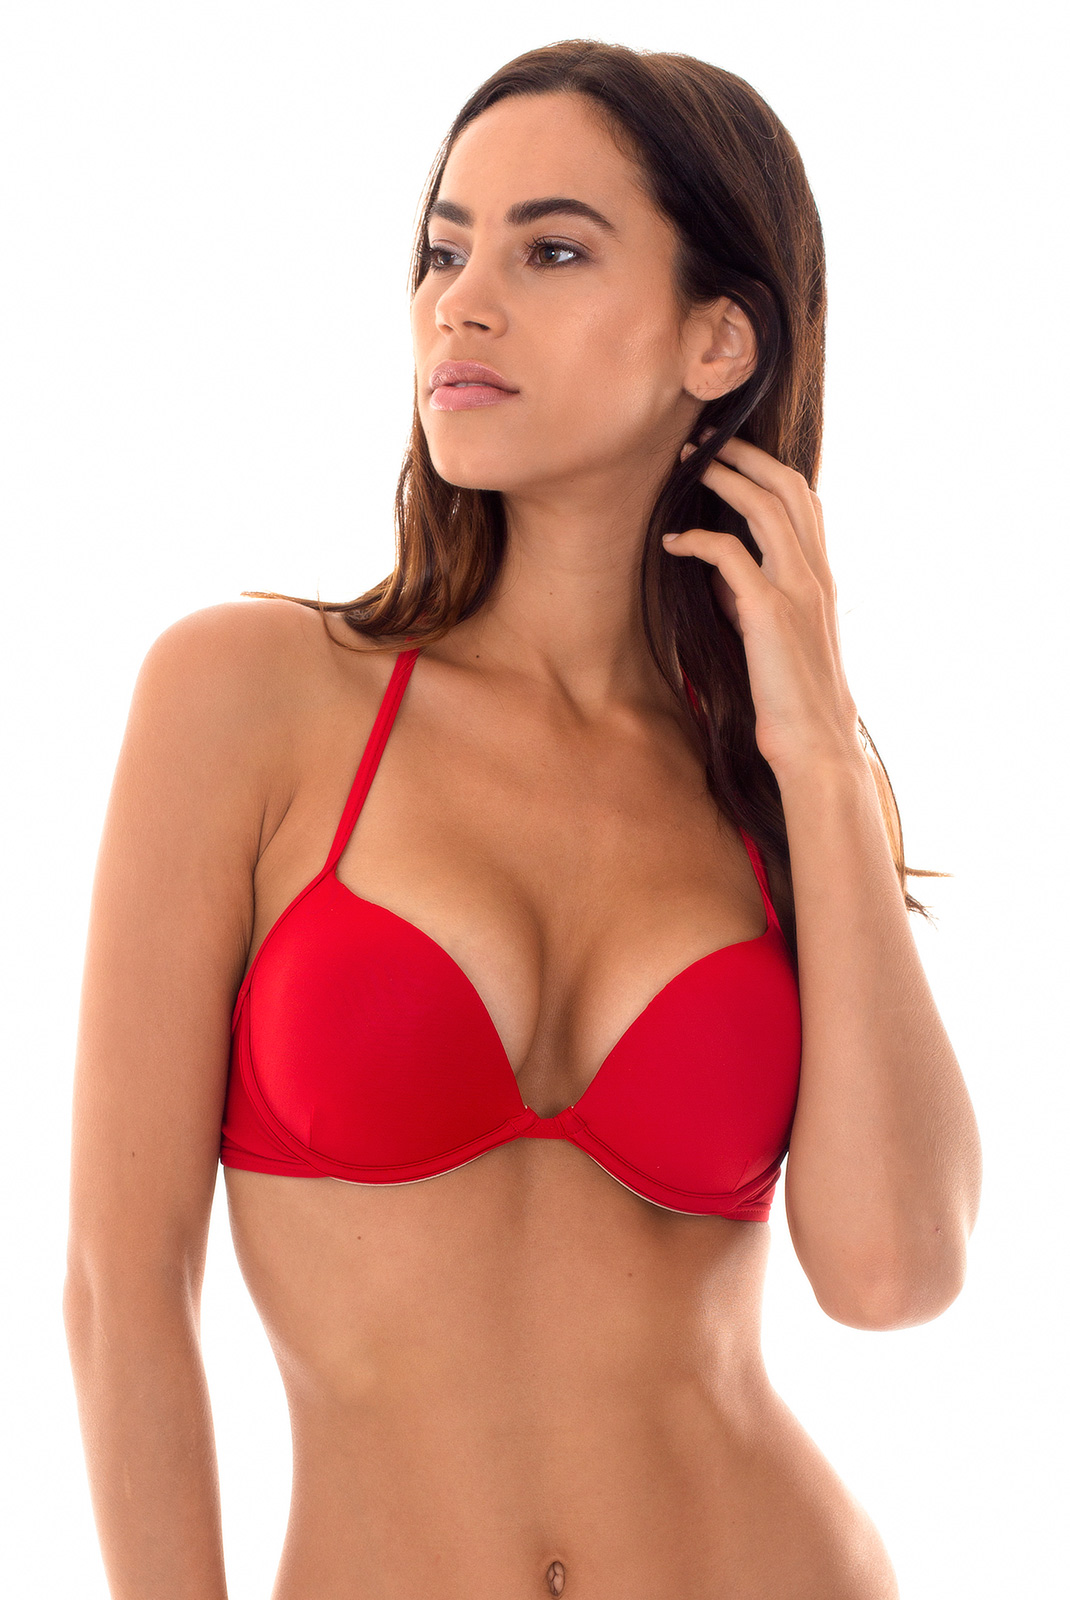 red bikini top ddcup could